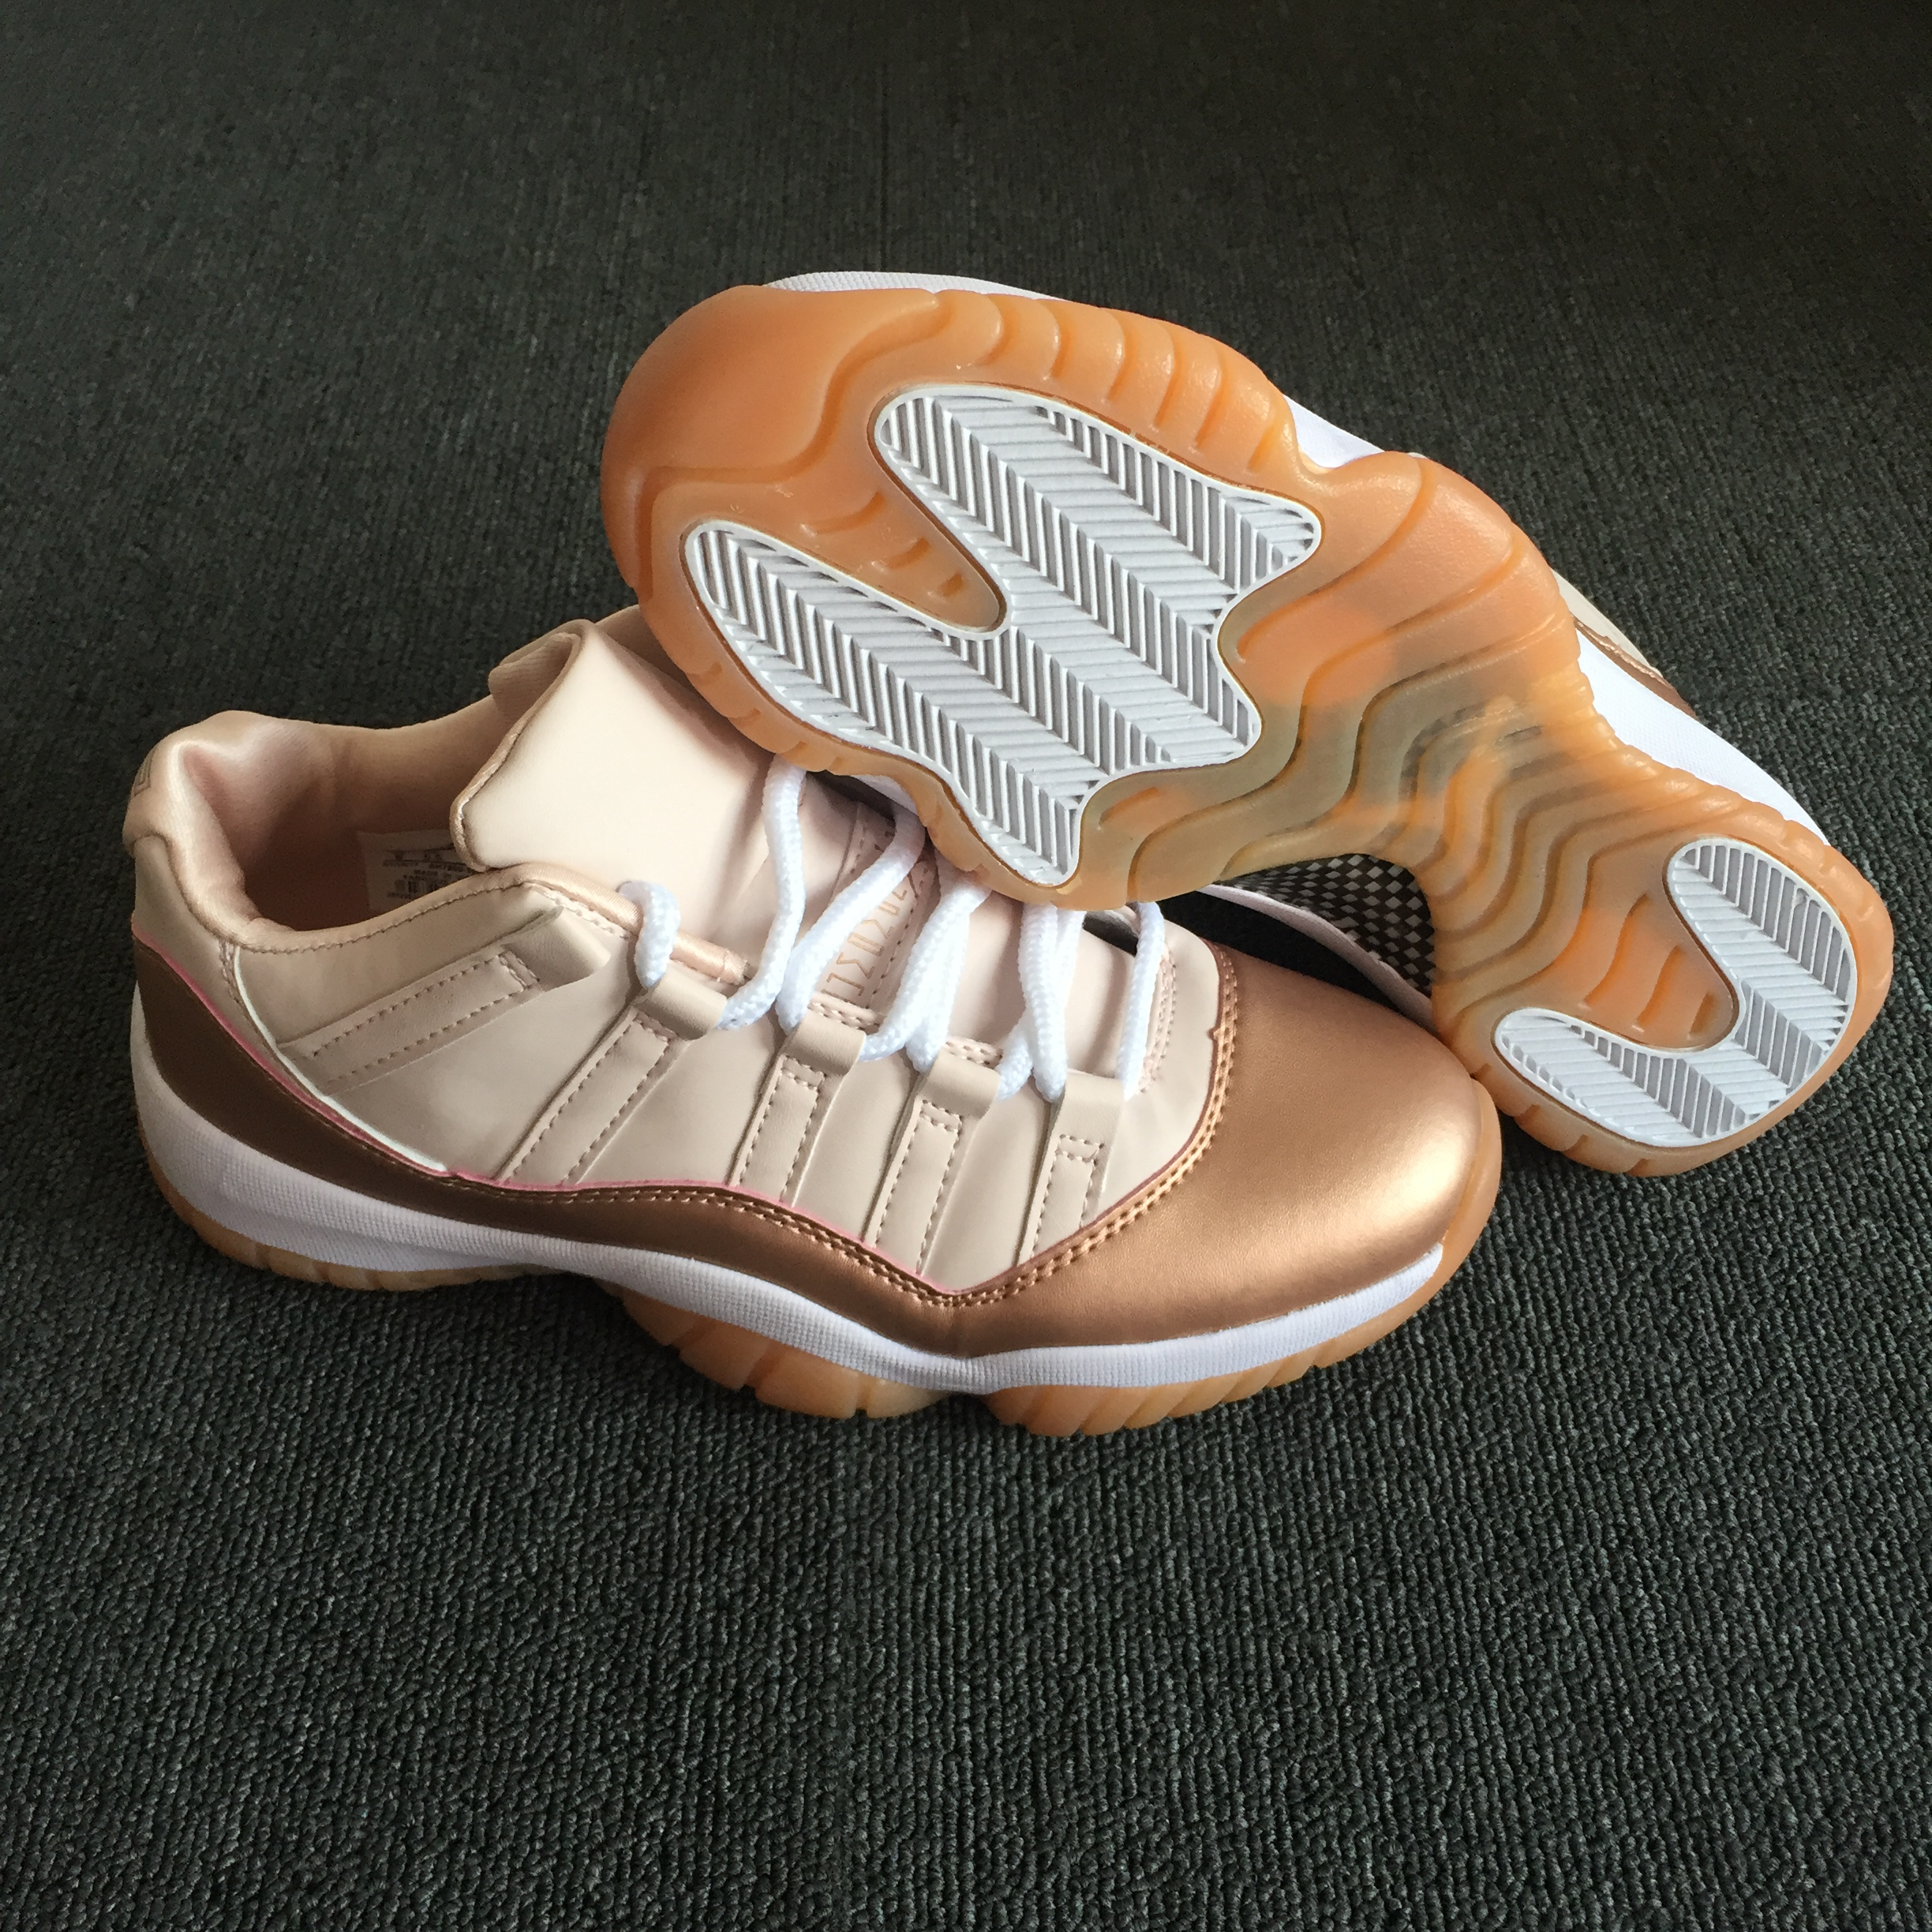 New Women Jordans 11 Rose Glod Shoes For Sale